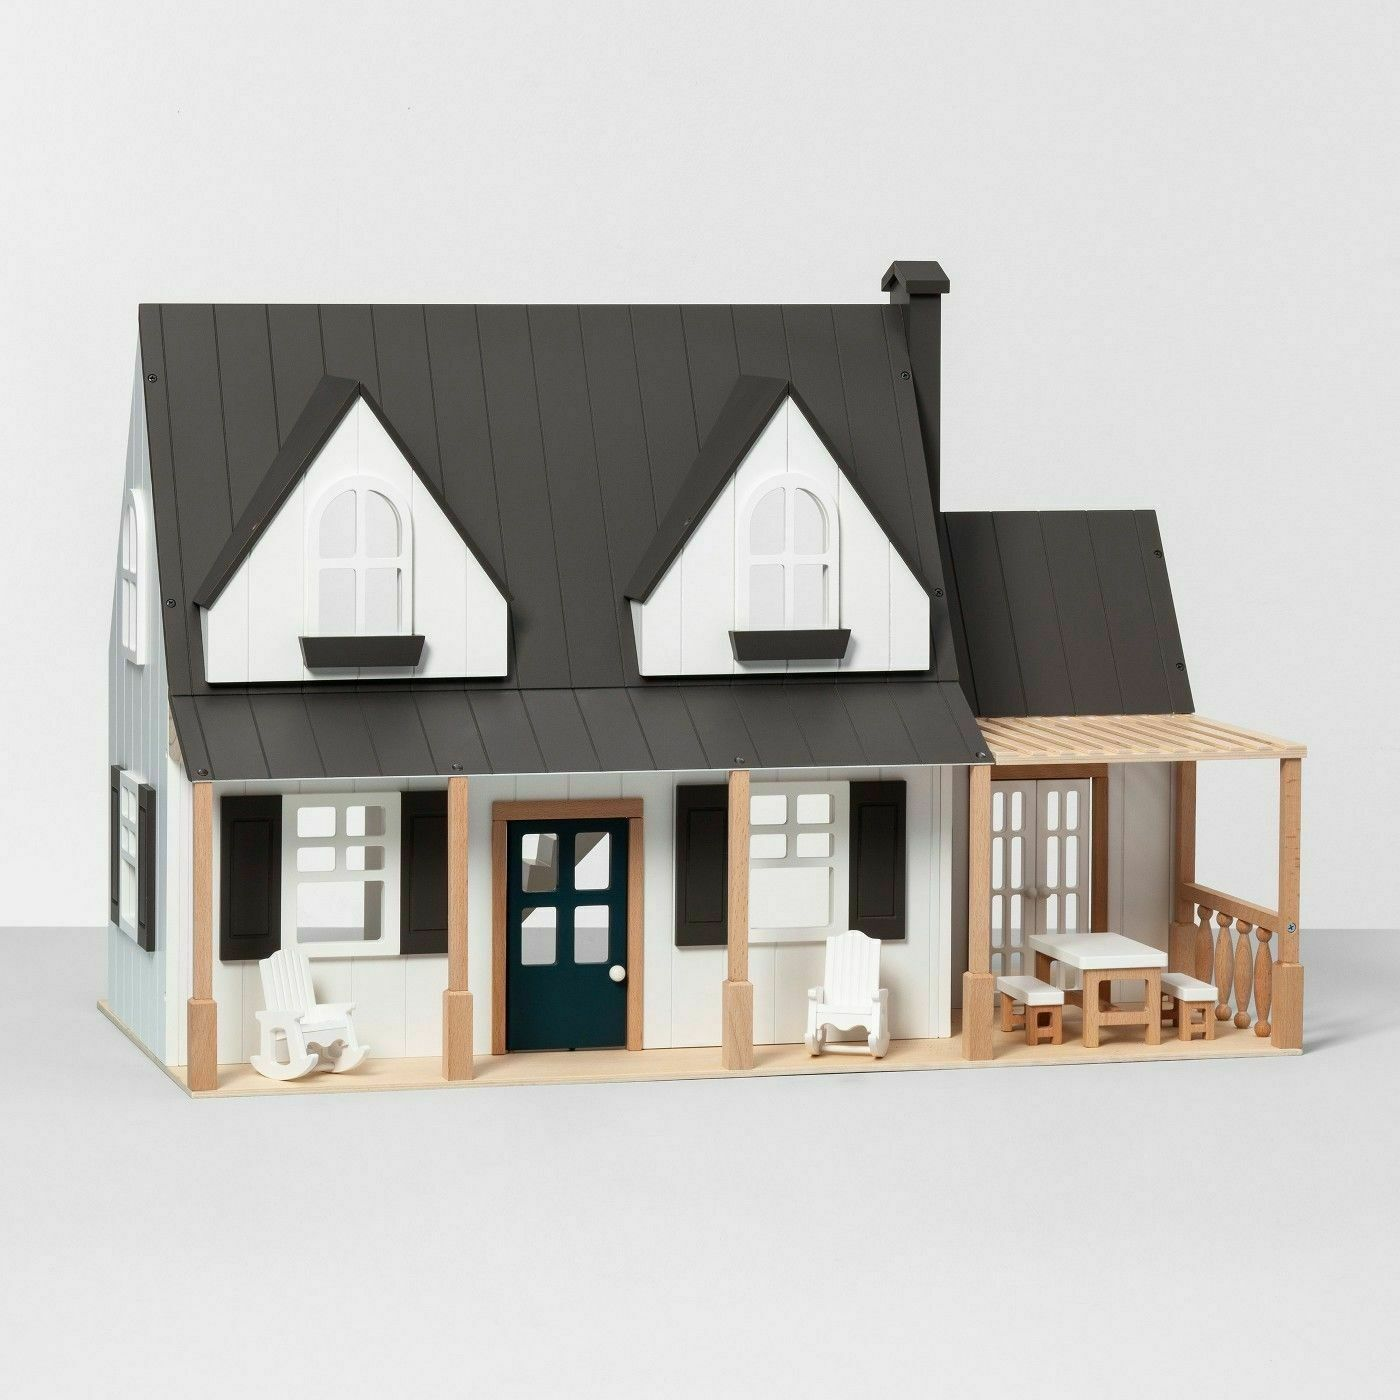 Hearth and Hand Magnolia Wood Wood Wood Toy Doll Farmhouse with Furniture  NEW aac808